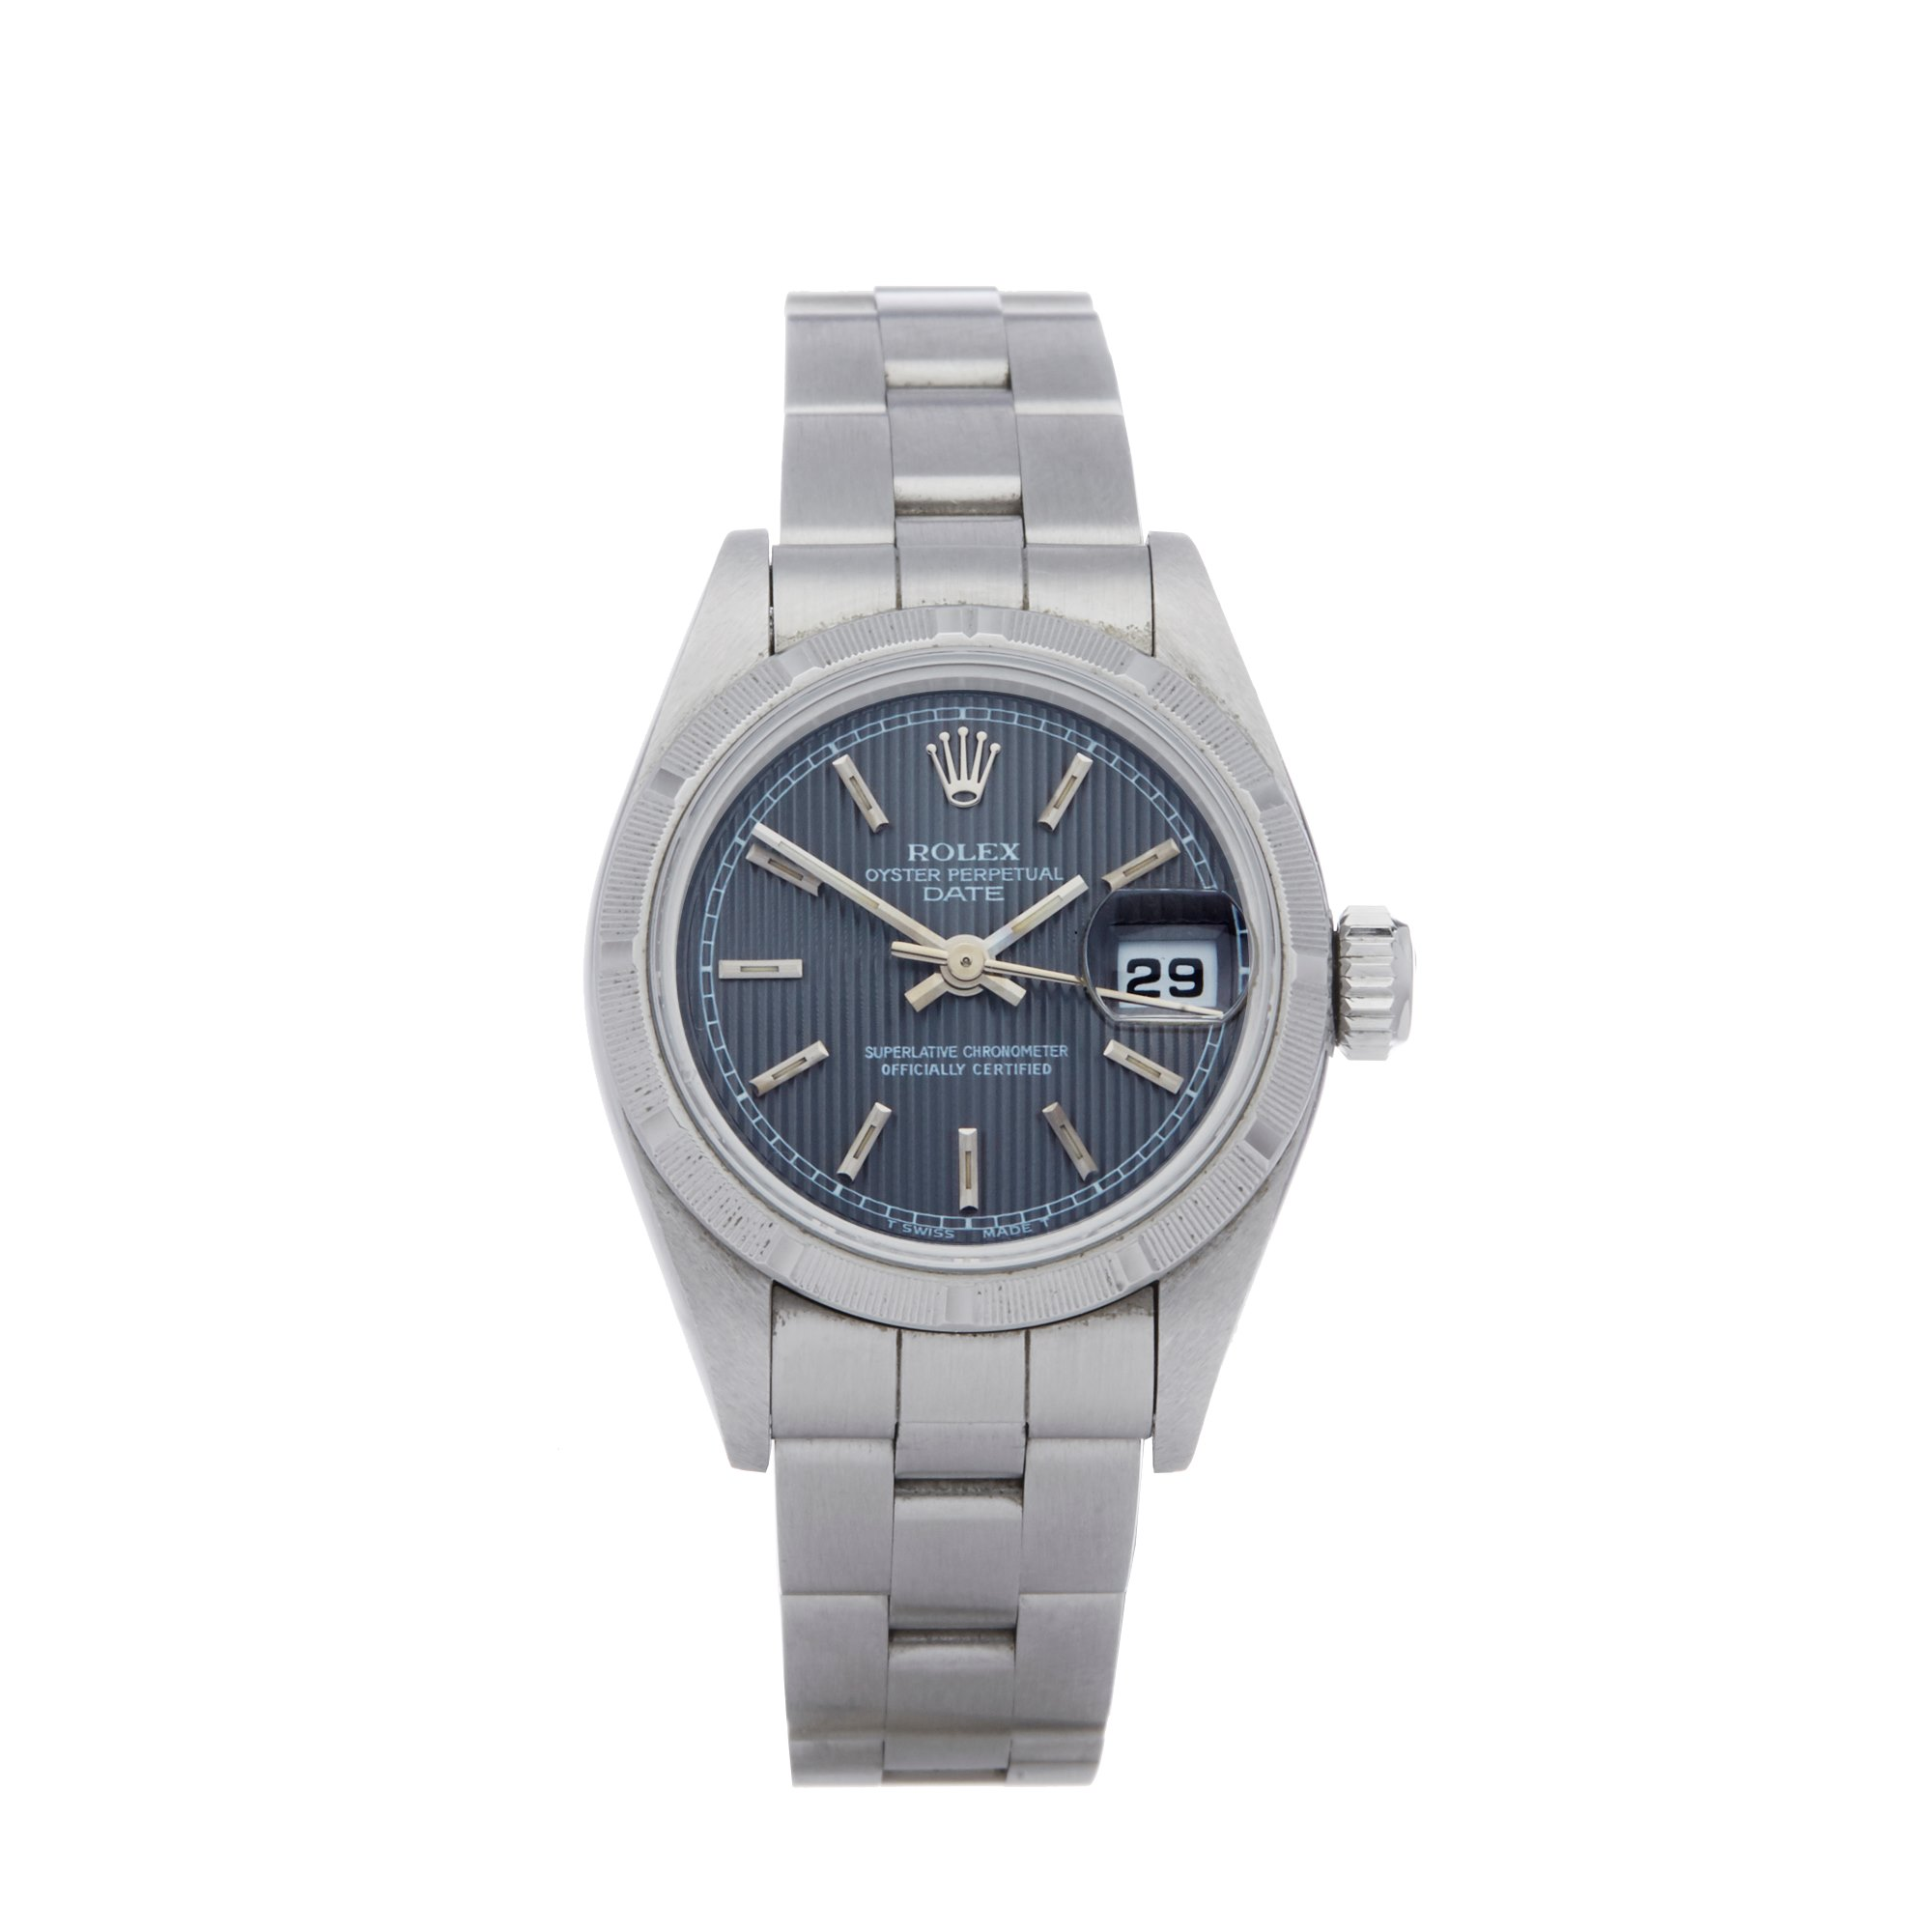 Rolex Oyster Perpetual 26 Stainless Steel 69190